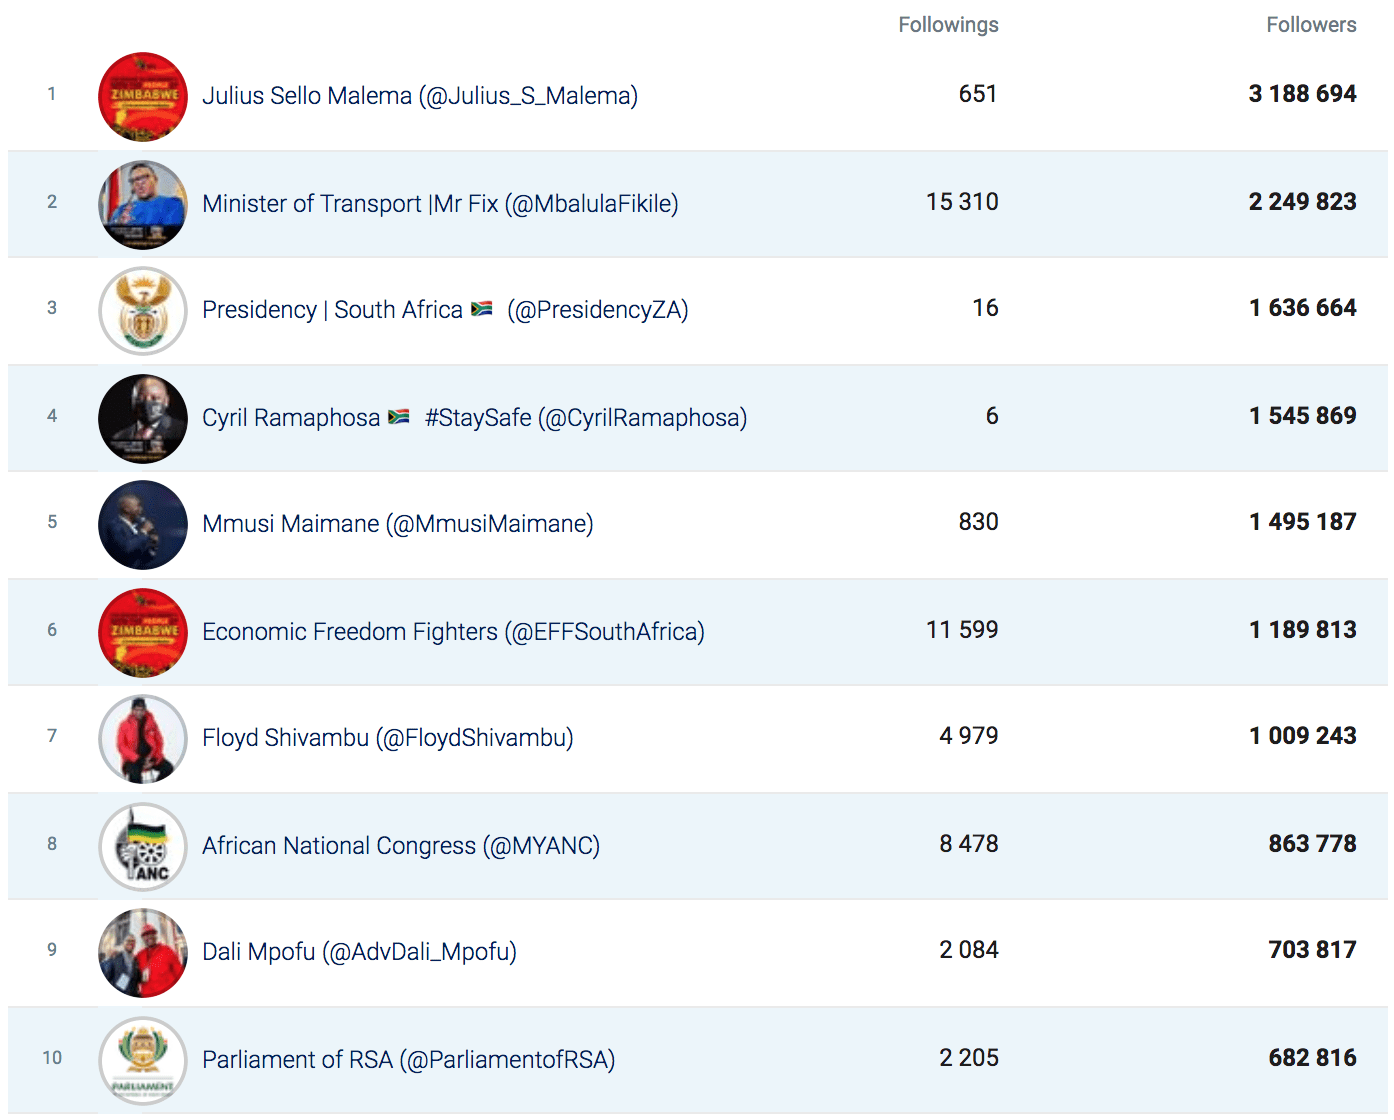 Bra Willy Seyama | eNitiate | Socialbakers | Top 10 Twitter Political Brands by No. of Followers | COVID-19 | South Africa | 21 Aug 2020